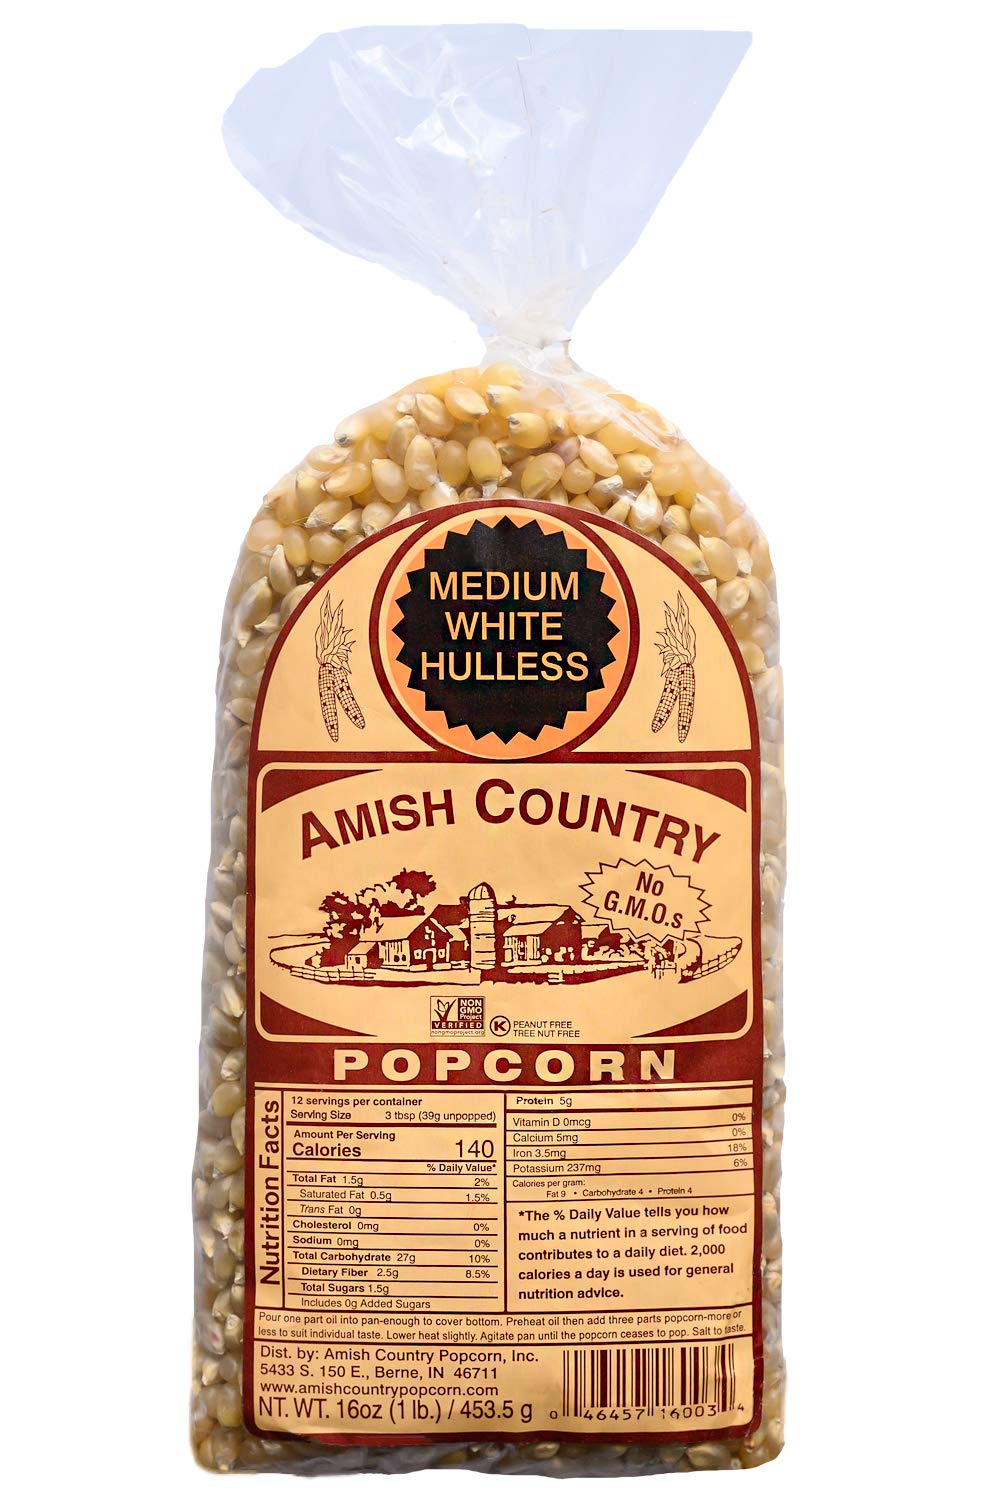 Amish Country Popcorn - Medium White Kernels (1 Pound Bag) - Old Fashioned, Non GMO, Gluten Free, Microwaveable, Stovetop and Air Popper Friendly - Recipe Guide by Amish Country Popcorn